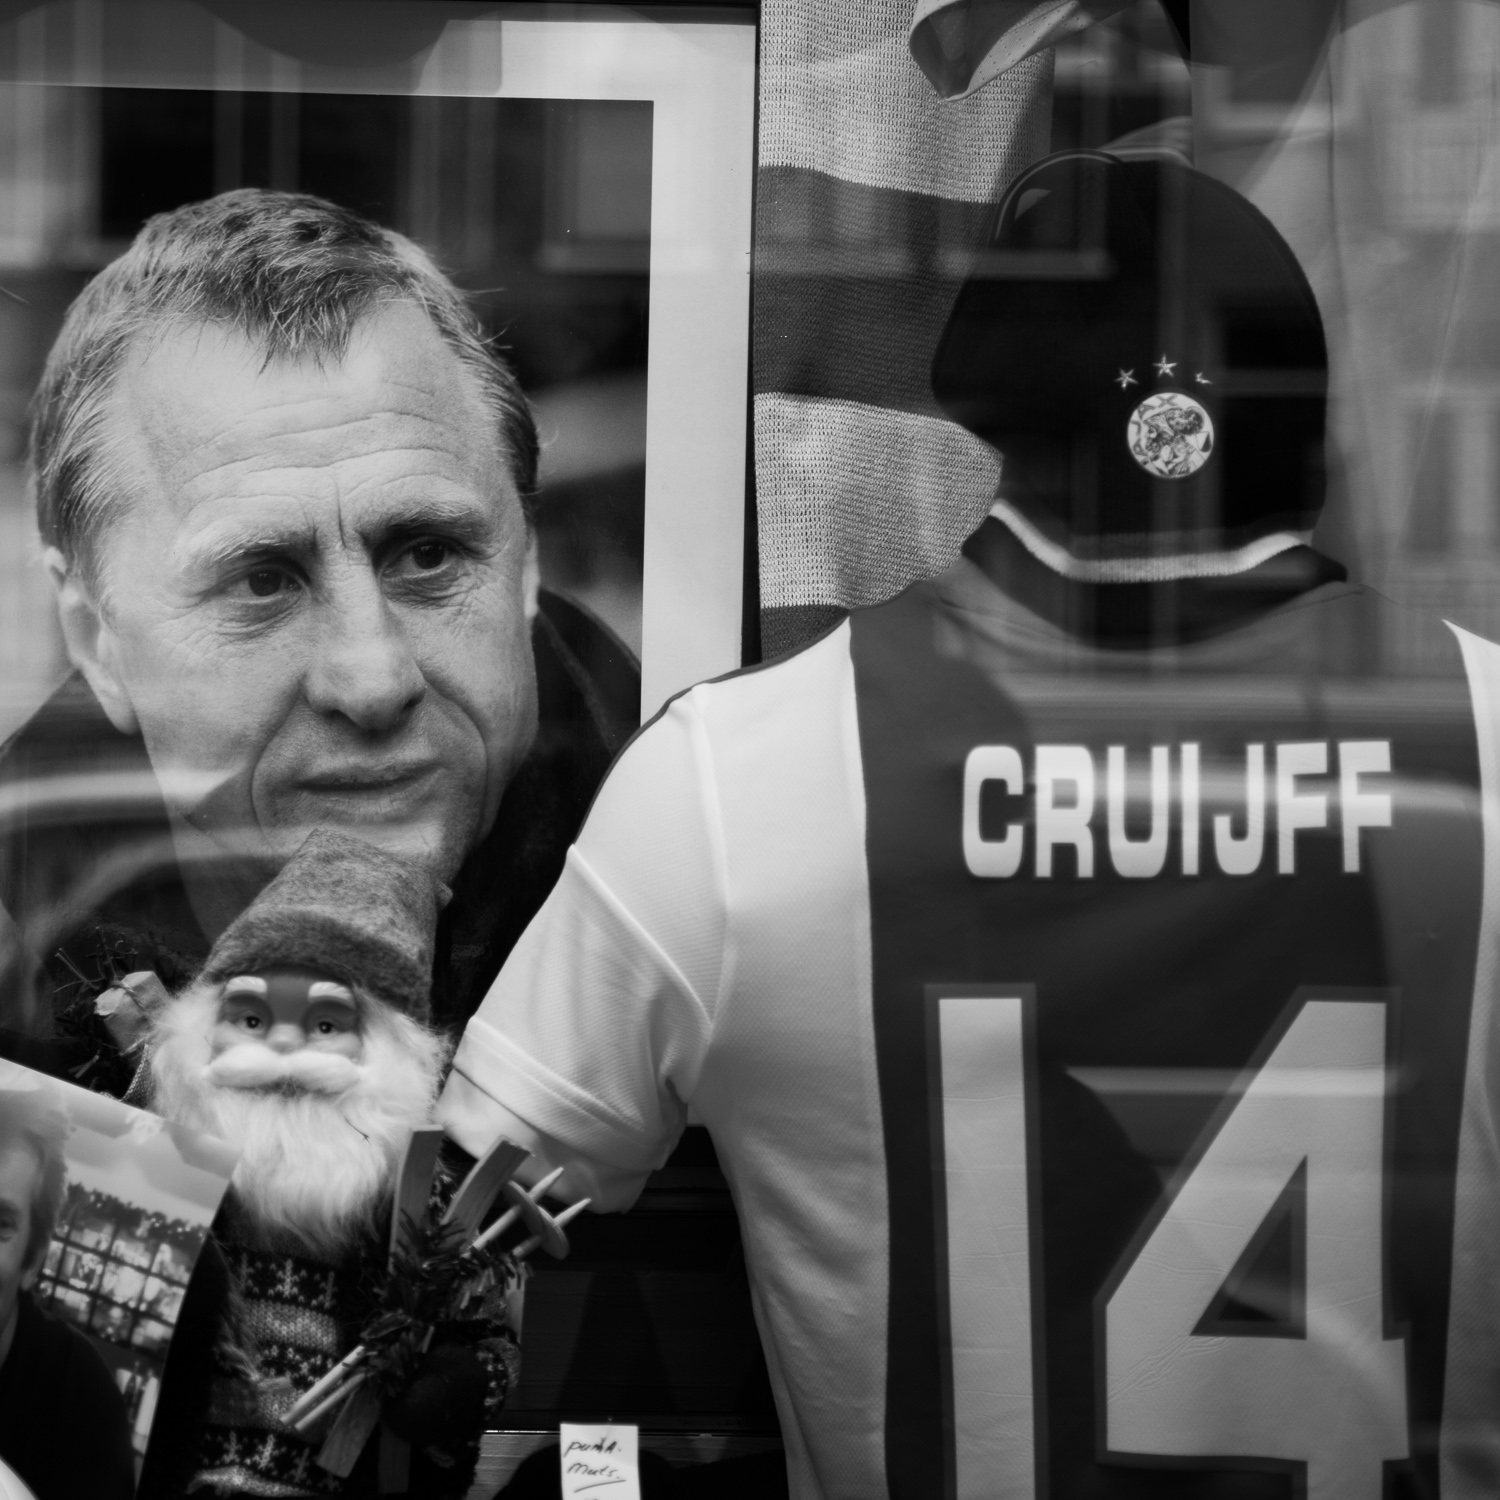 Remember Johan Cruijff